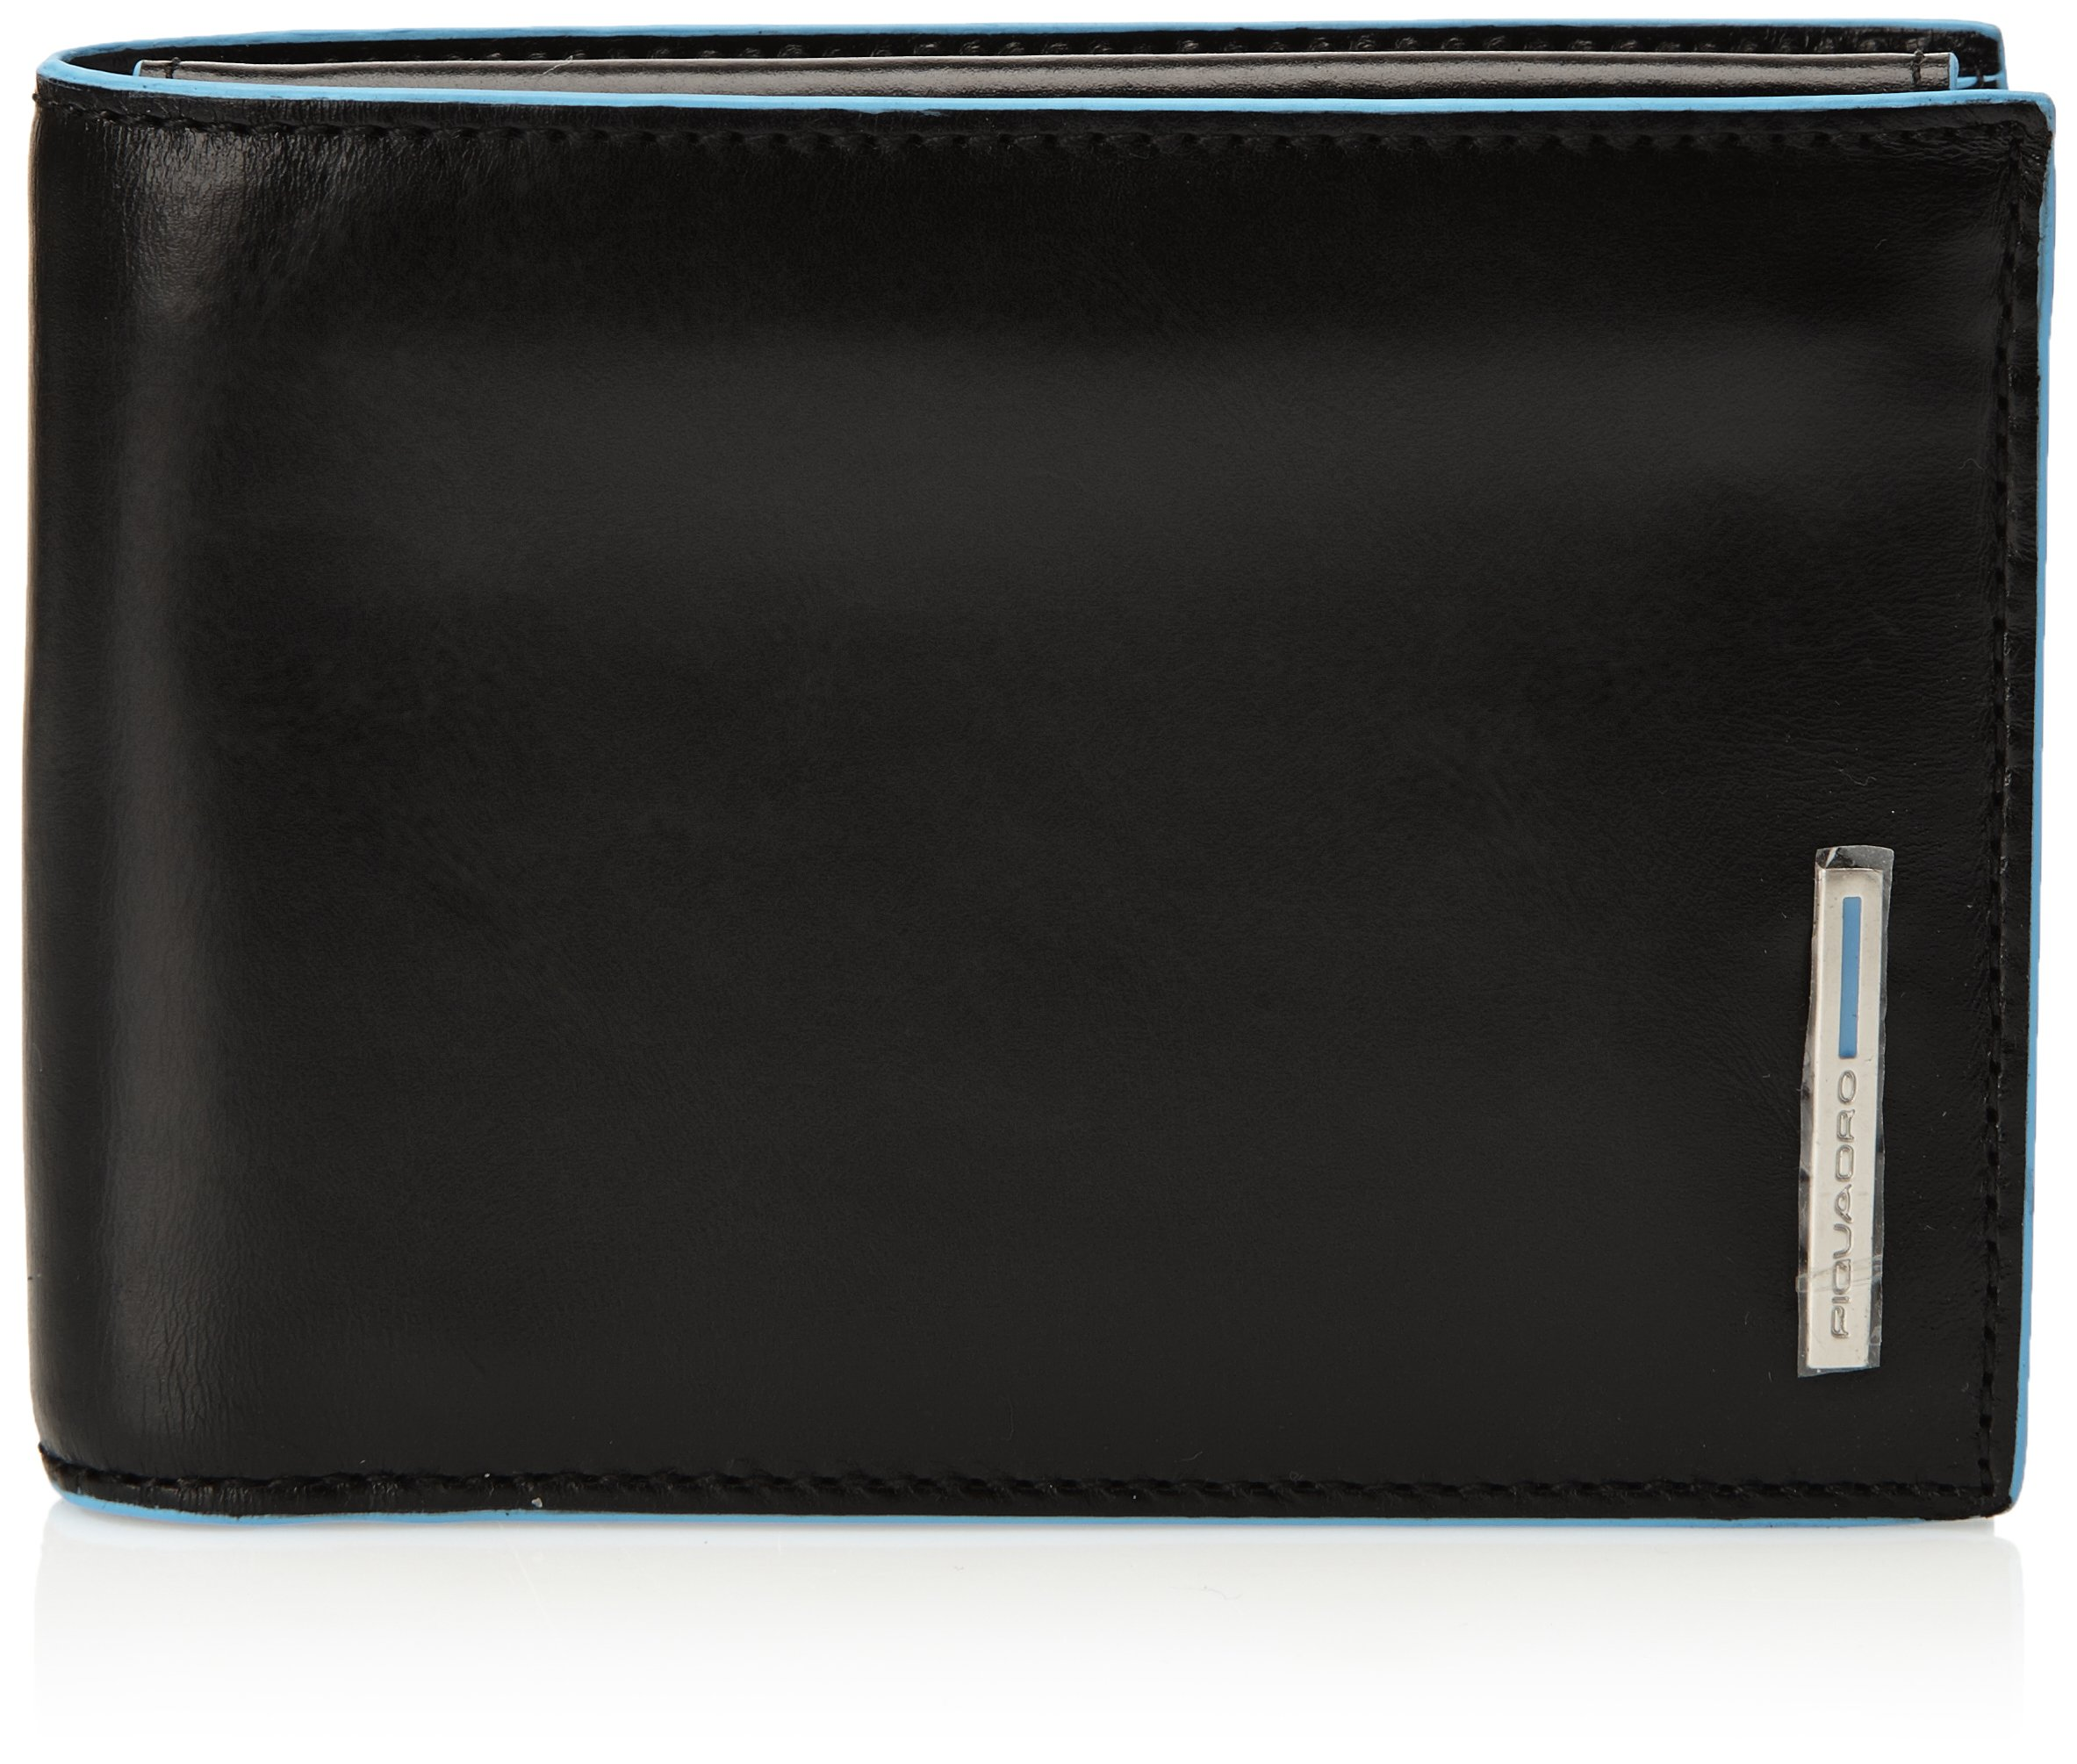 Piquadro Man's Wallet In Leather, Black 1392B2, One Size